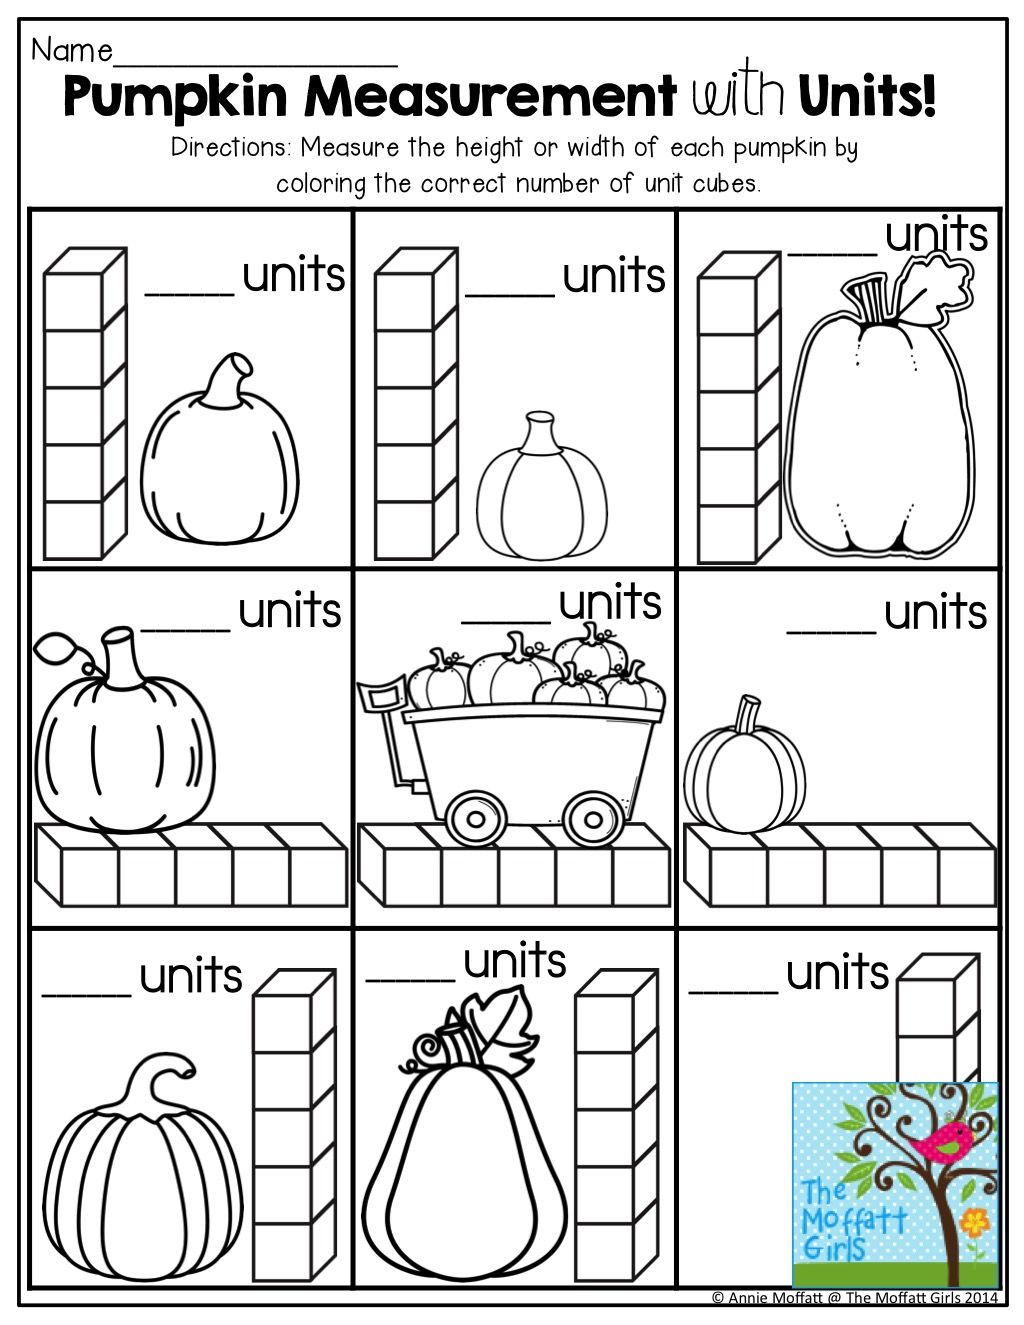 Pumpkin Measurement And Other Fun Printables